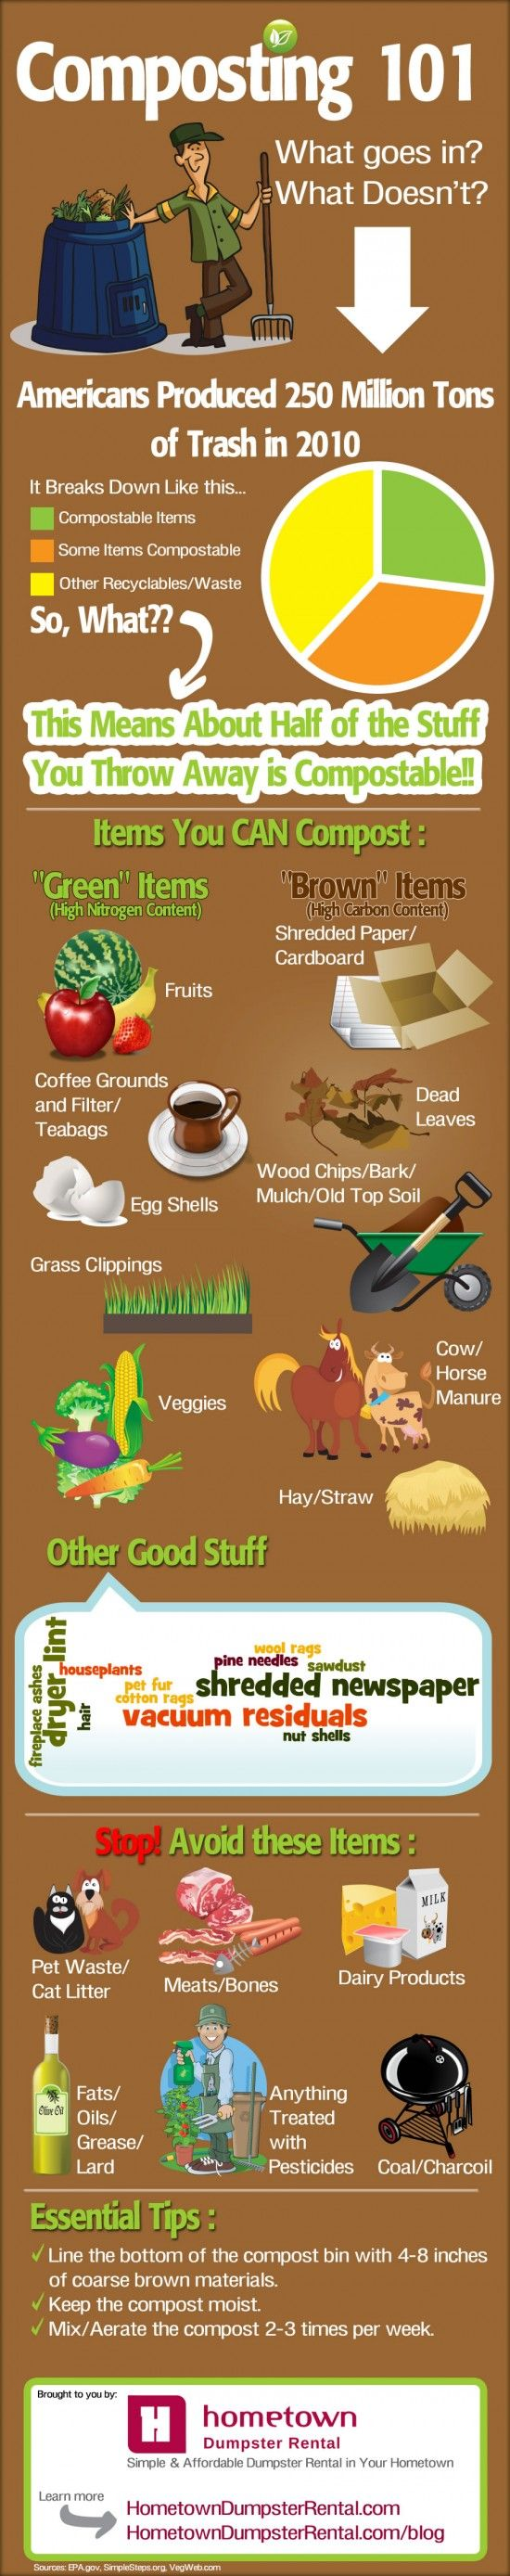 COMPOSTING 101 - WHAT'S IN, WHAT'S OUT?